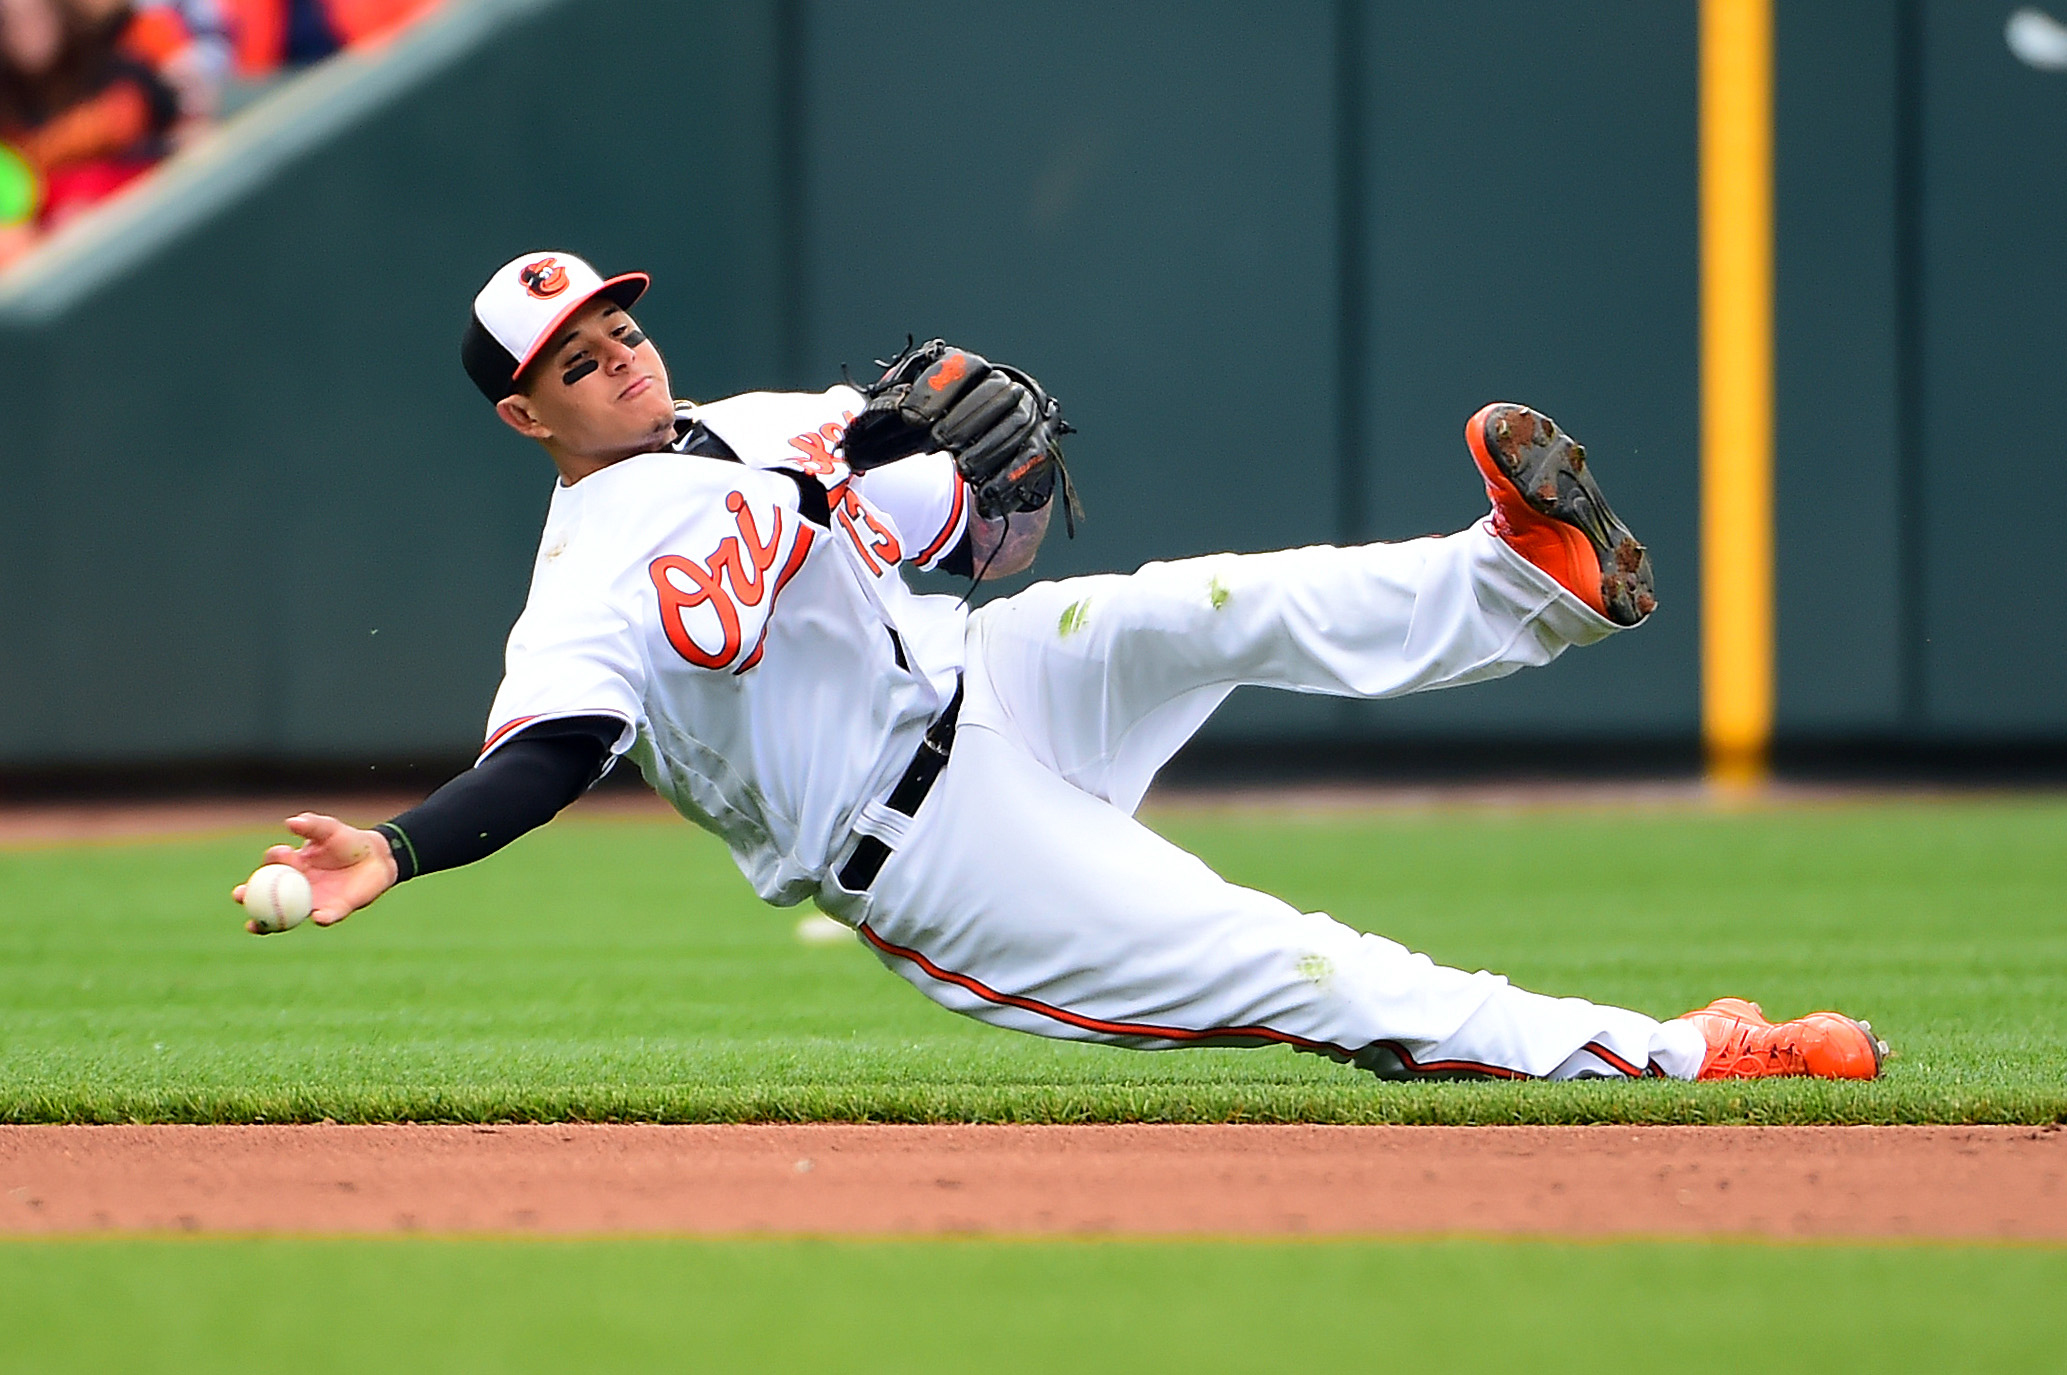 Apr 29, 2018; Baltimore, MD, USA; Baltimore Orioles shortstop Manny Machado (13) fields a ground ball in the sixth inning against the Detroit Tigers at Oriole Park at Camden Yards. Mandatory Credit: Evan Habeeb-USA TODAY Sports